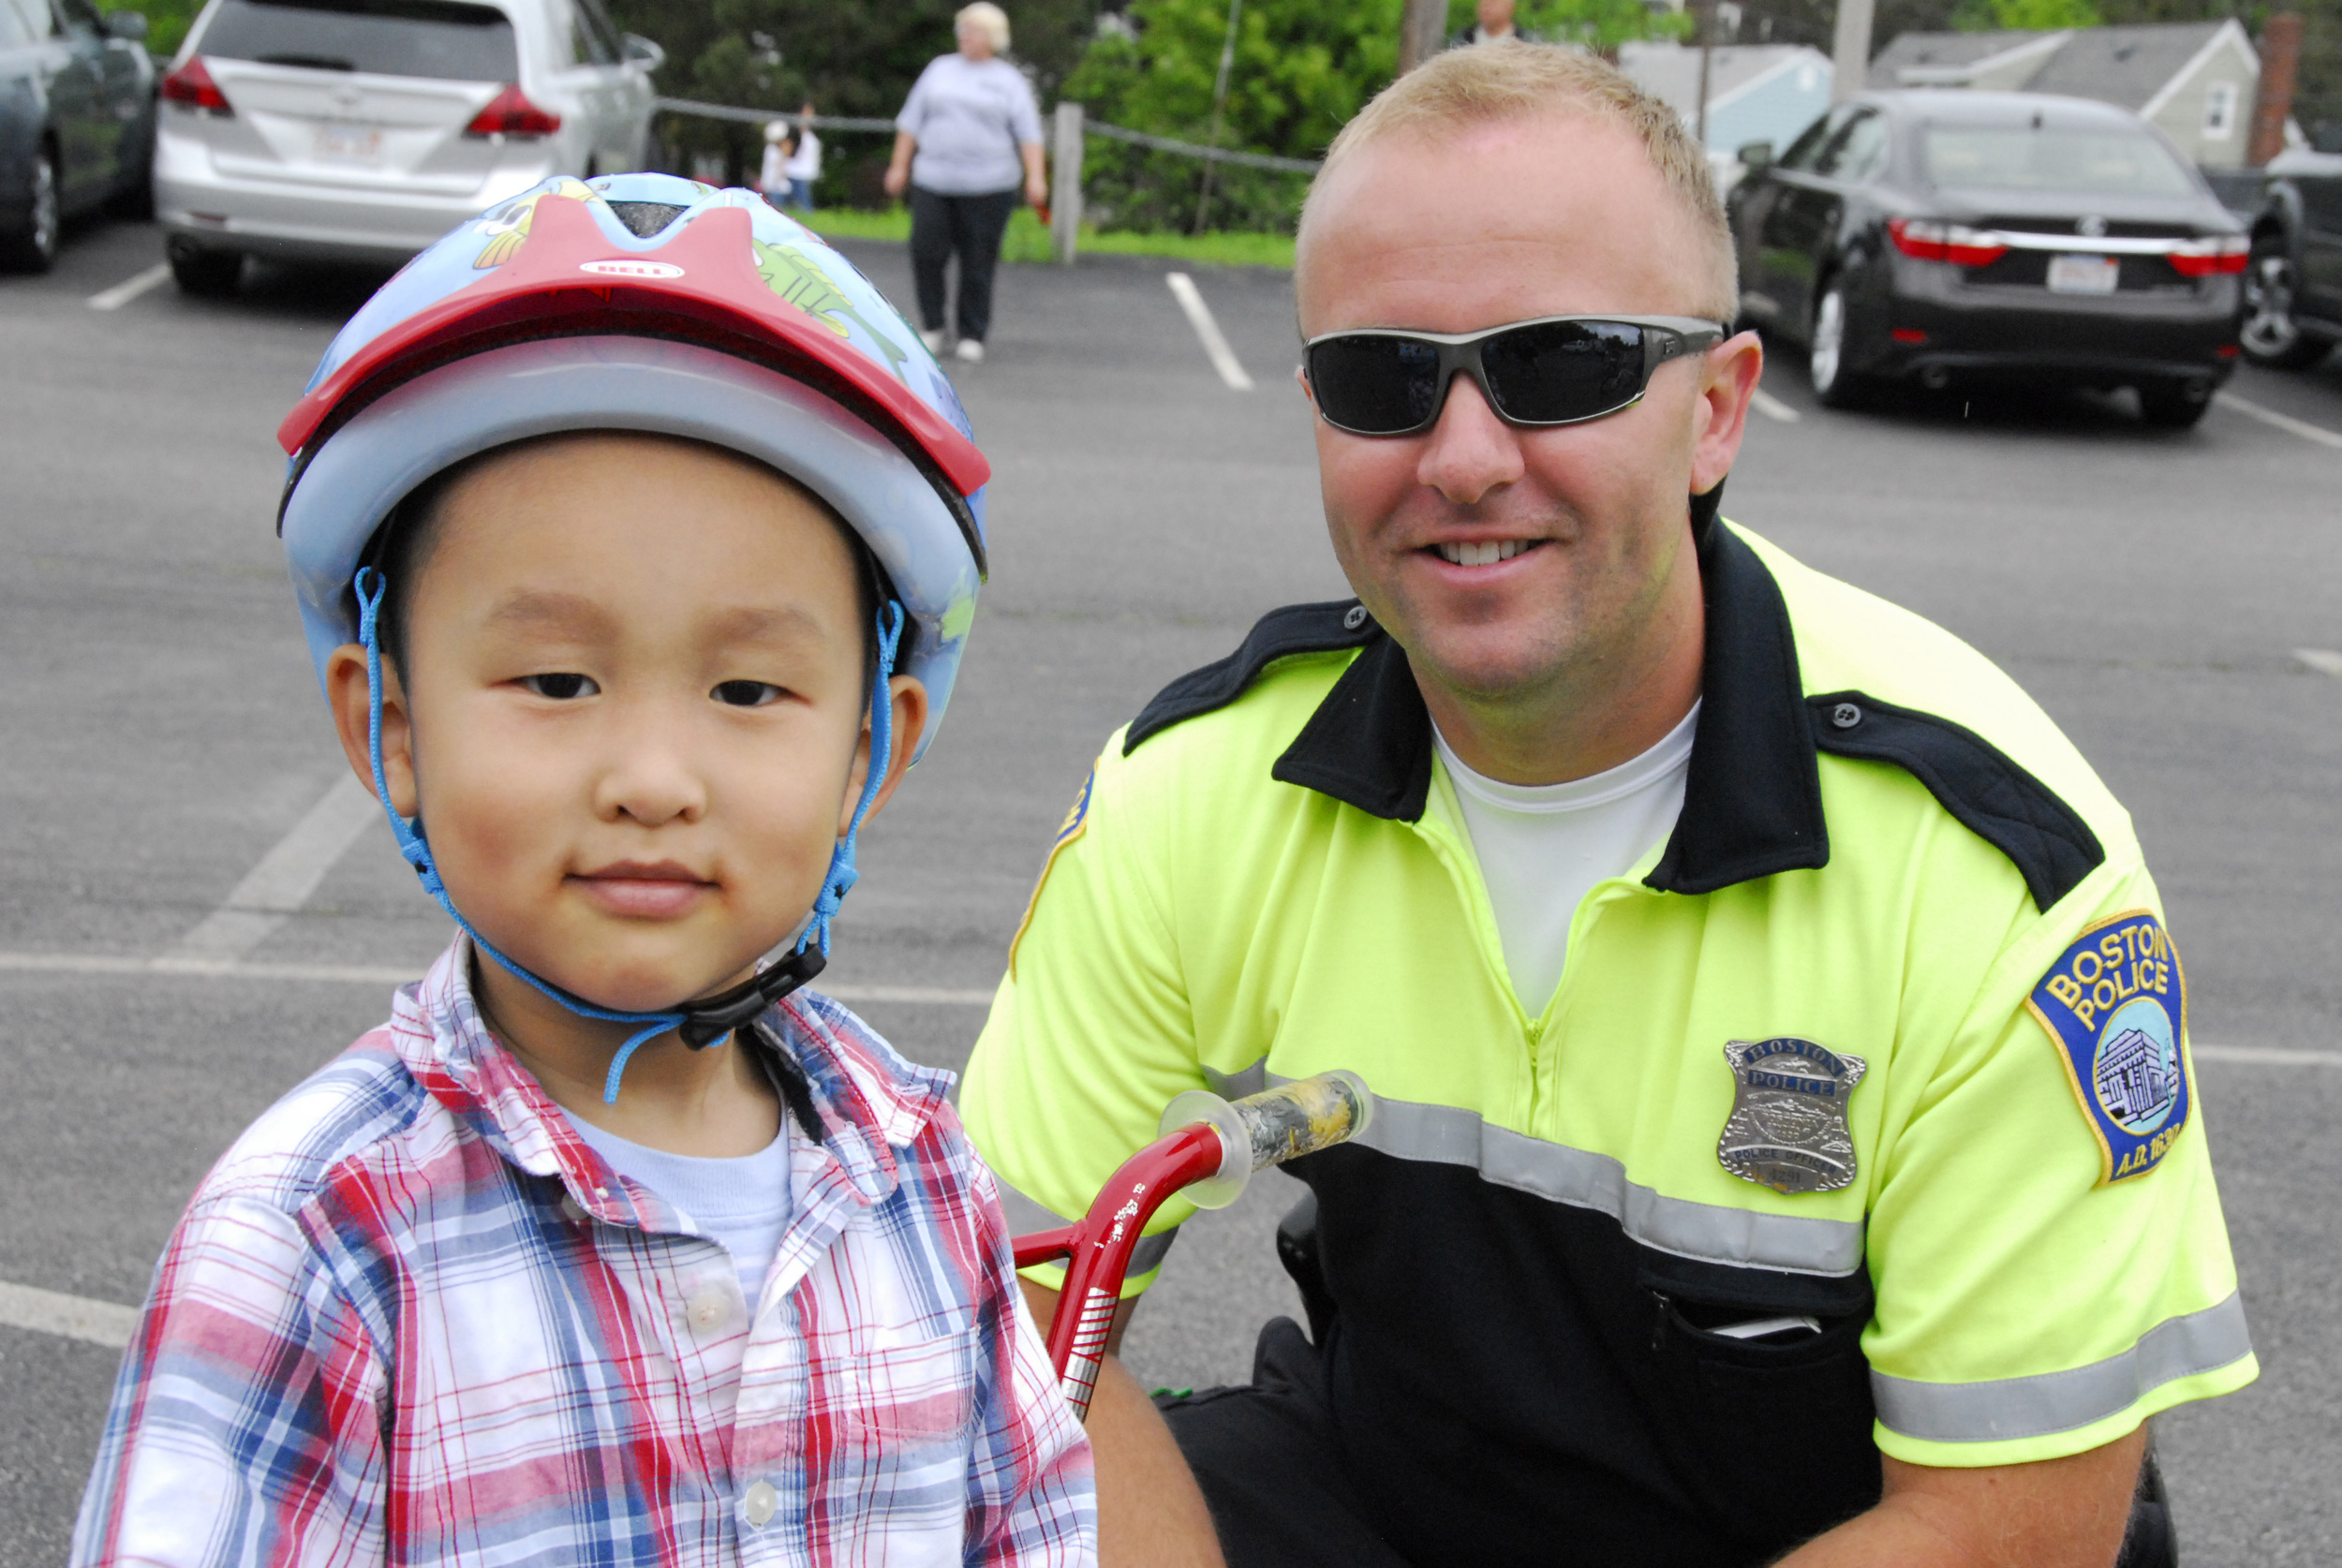 Officer Dario Fancelli hanging with one of his new friends at the District C-11 Bike Rodeo